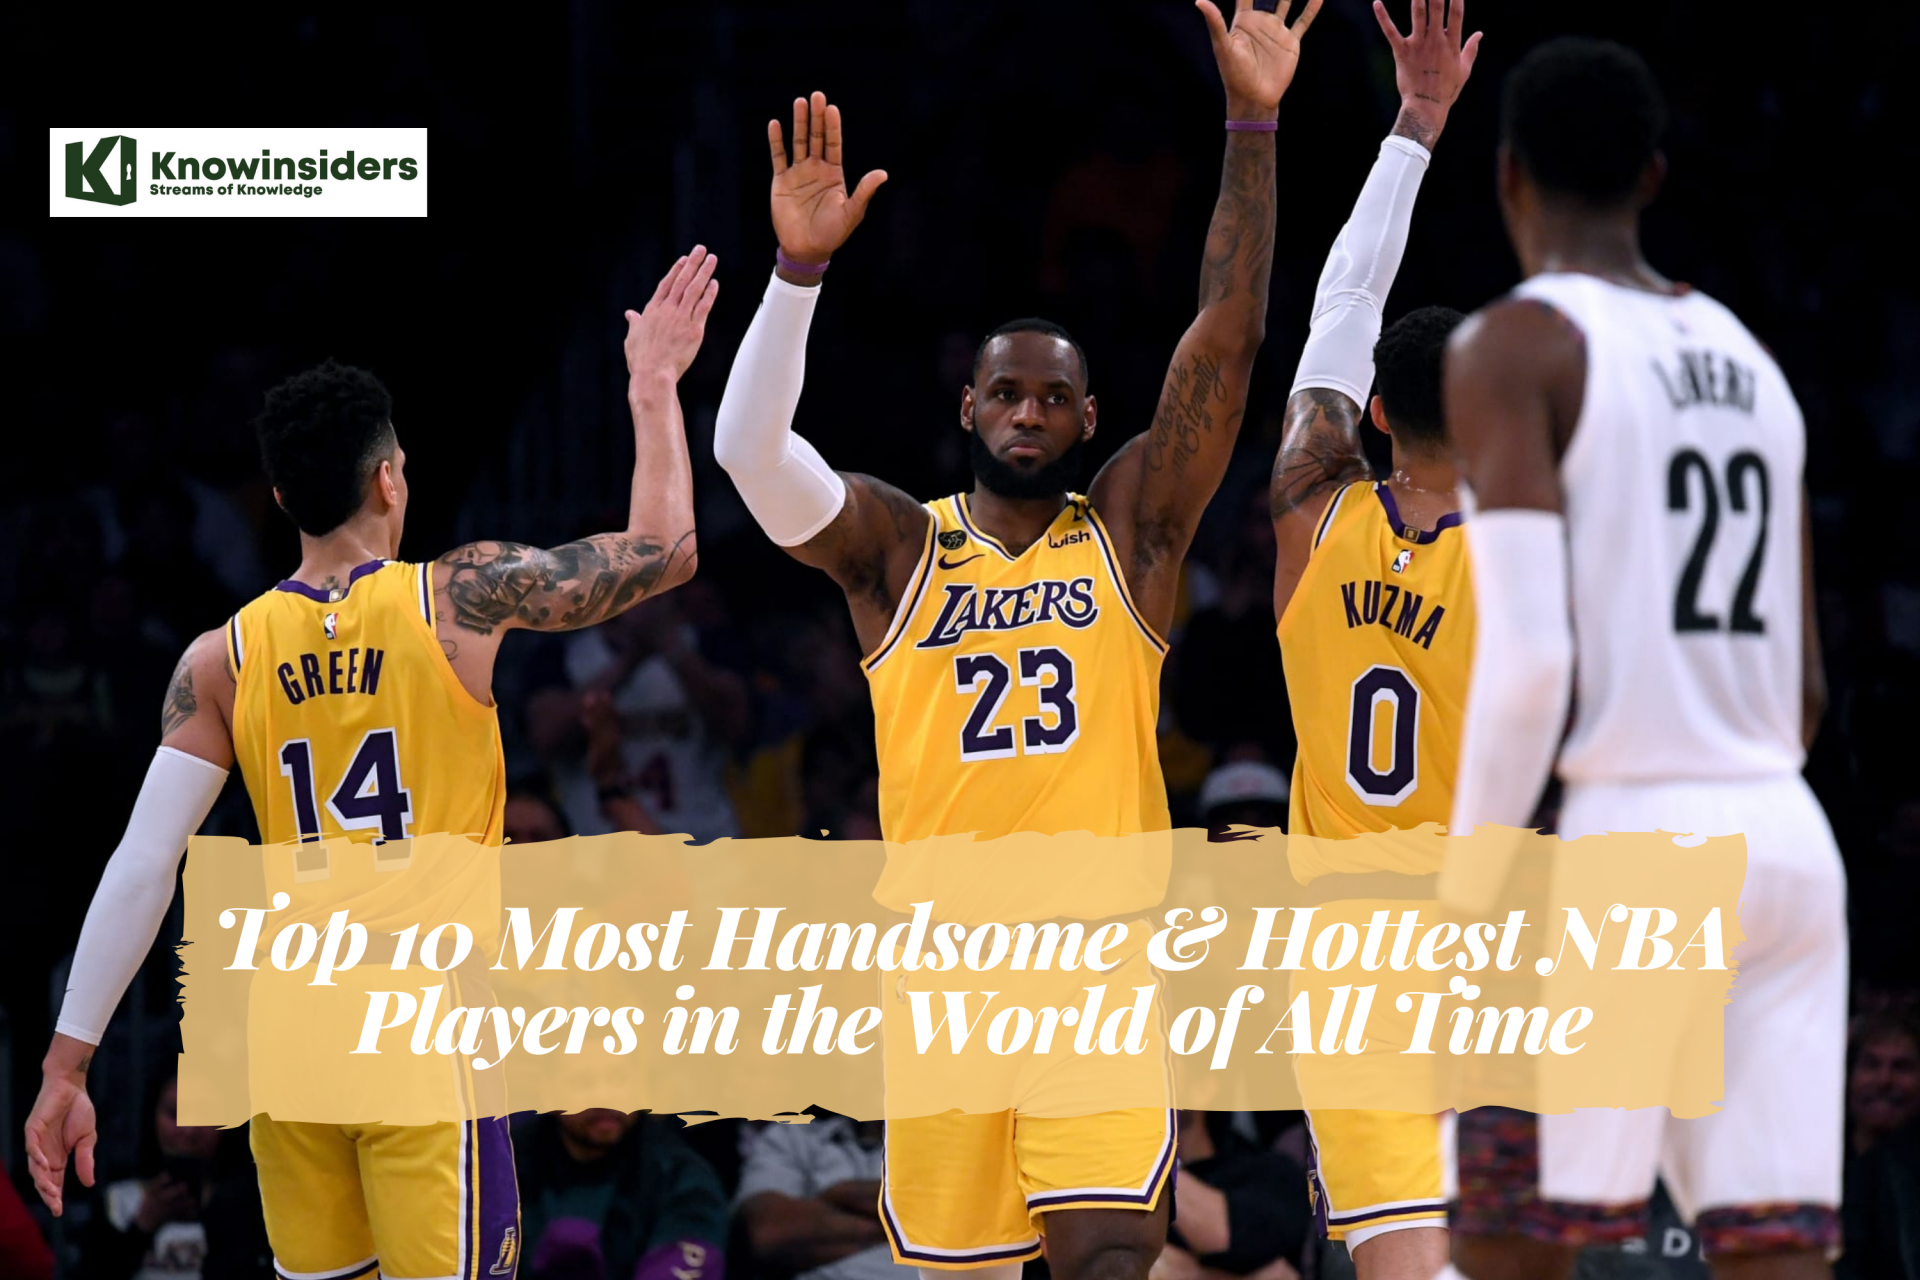 Top 10 Most Handsome & Hottest NBA Players in the World of All Time